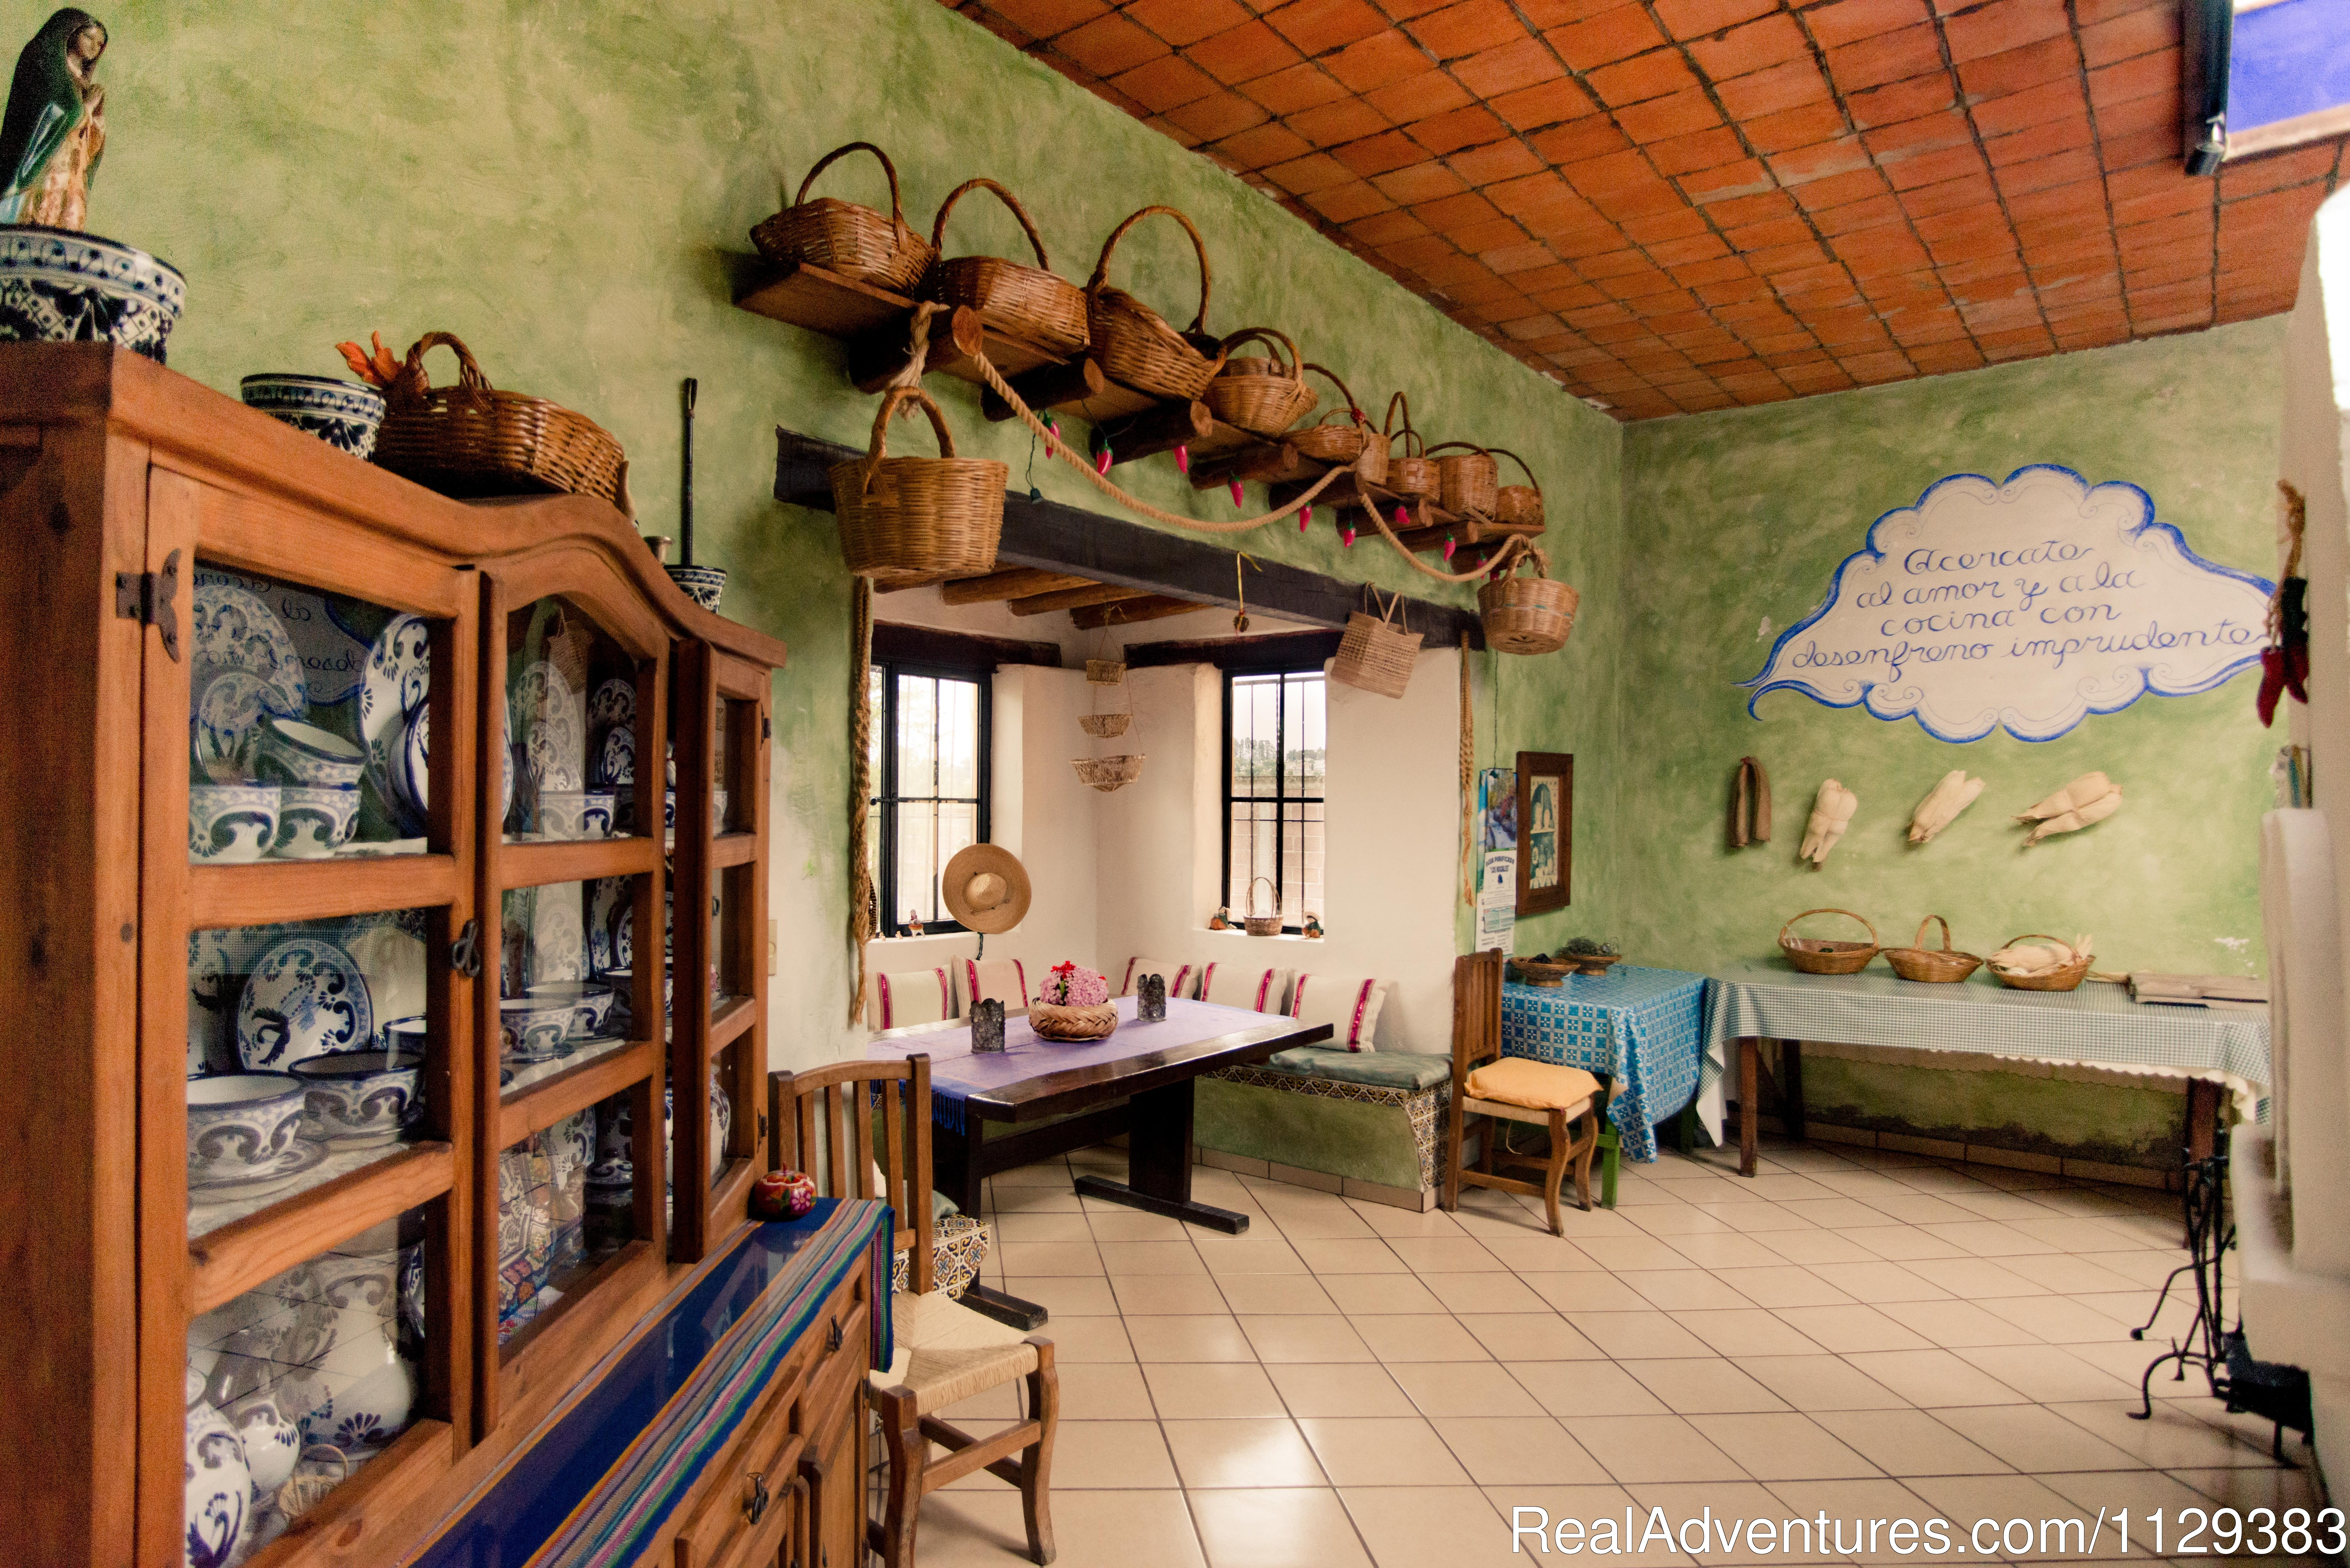 Casa Carmelita Kitchen | Image #8/22 | Mexican Home Cooking School boutique accommodation